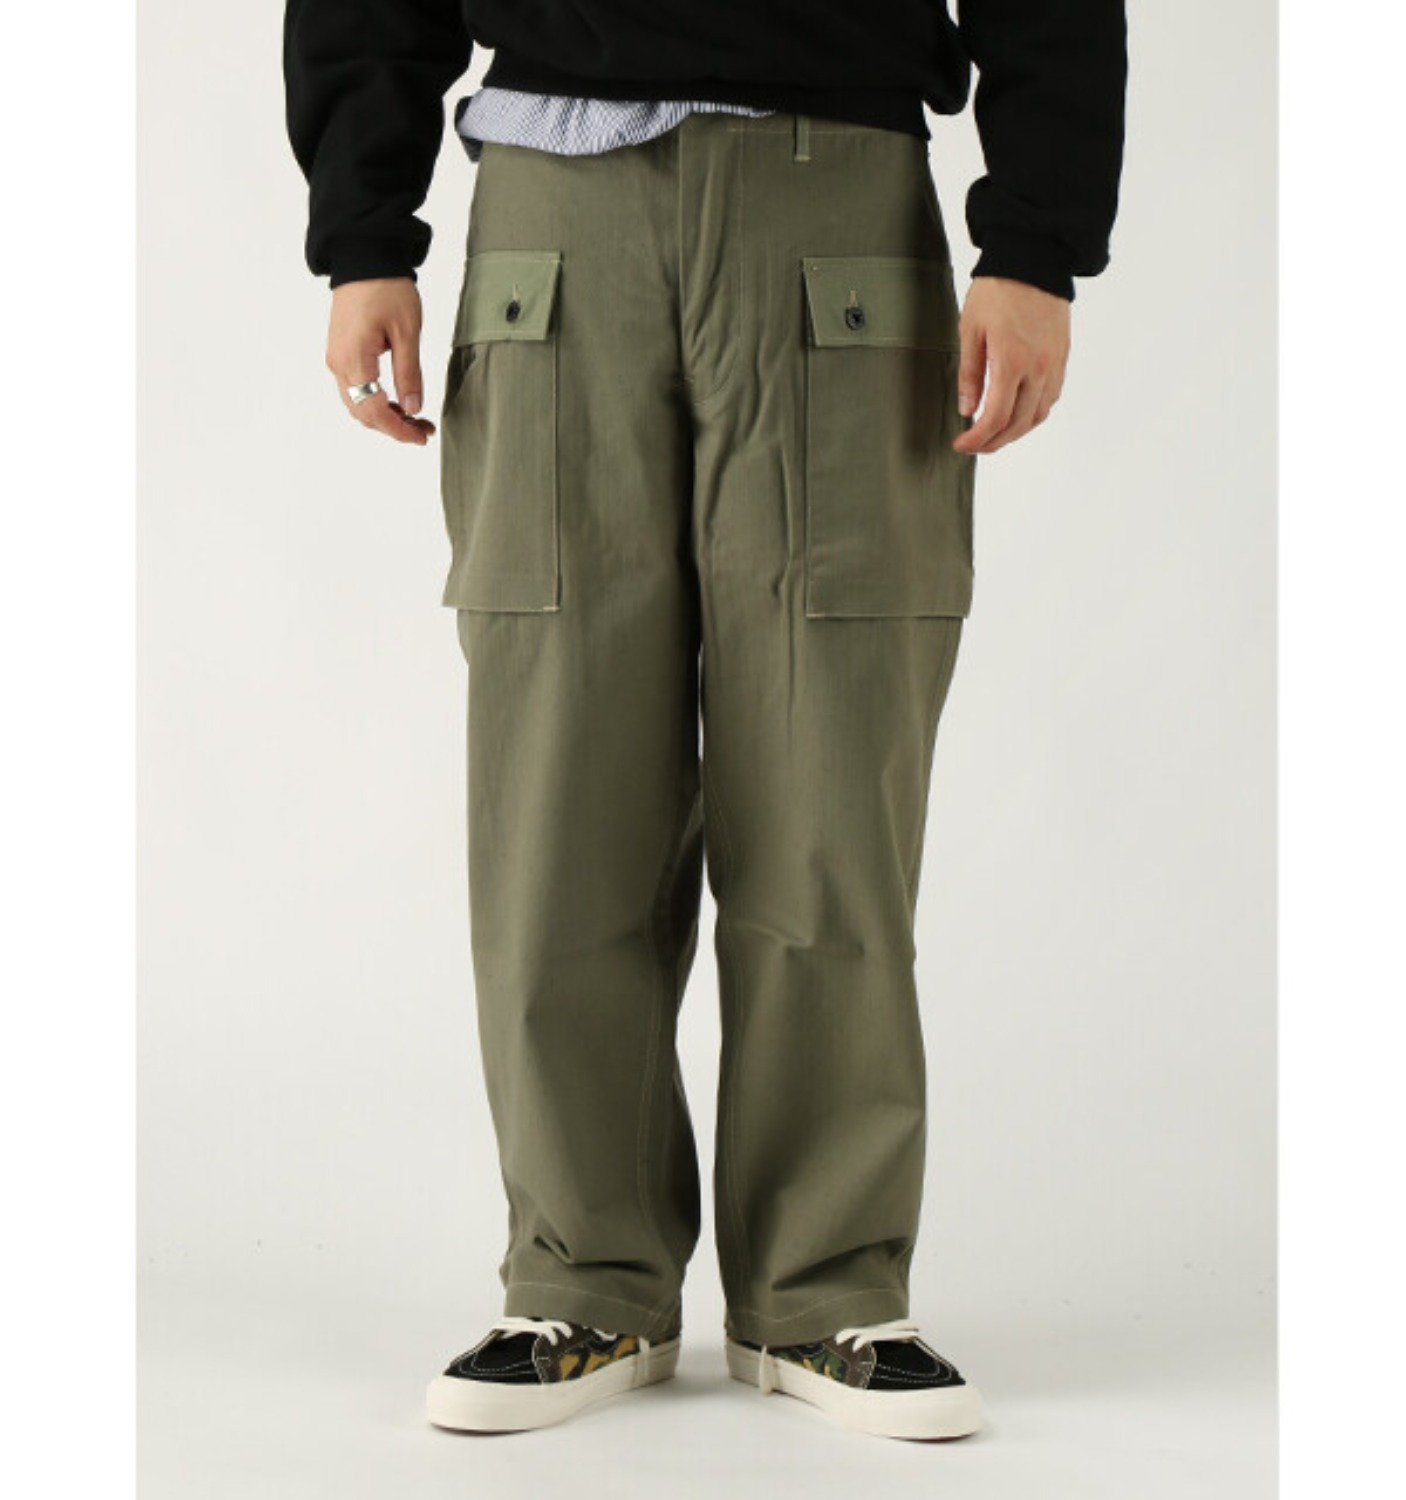 LOT1097 USMC HB MONKEY PANTS OLIVE